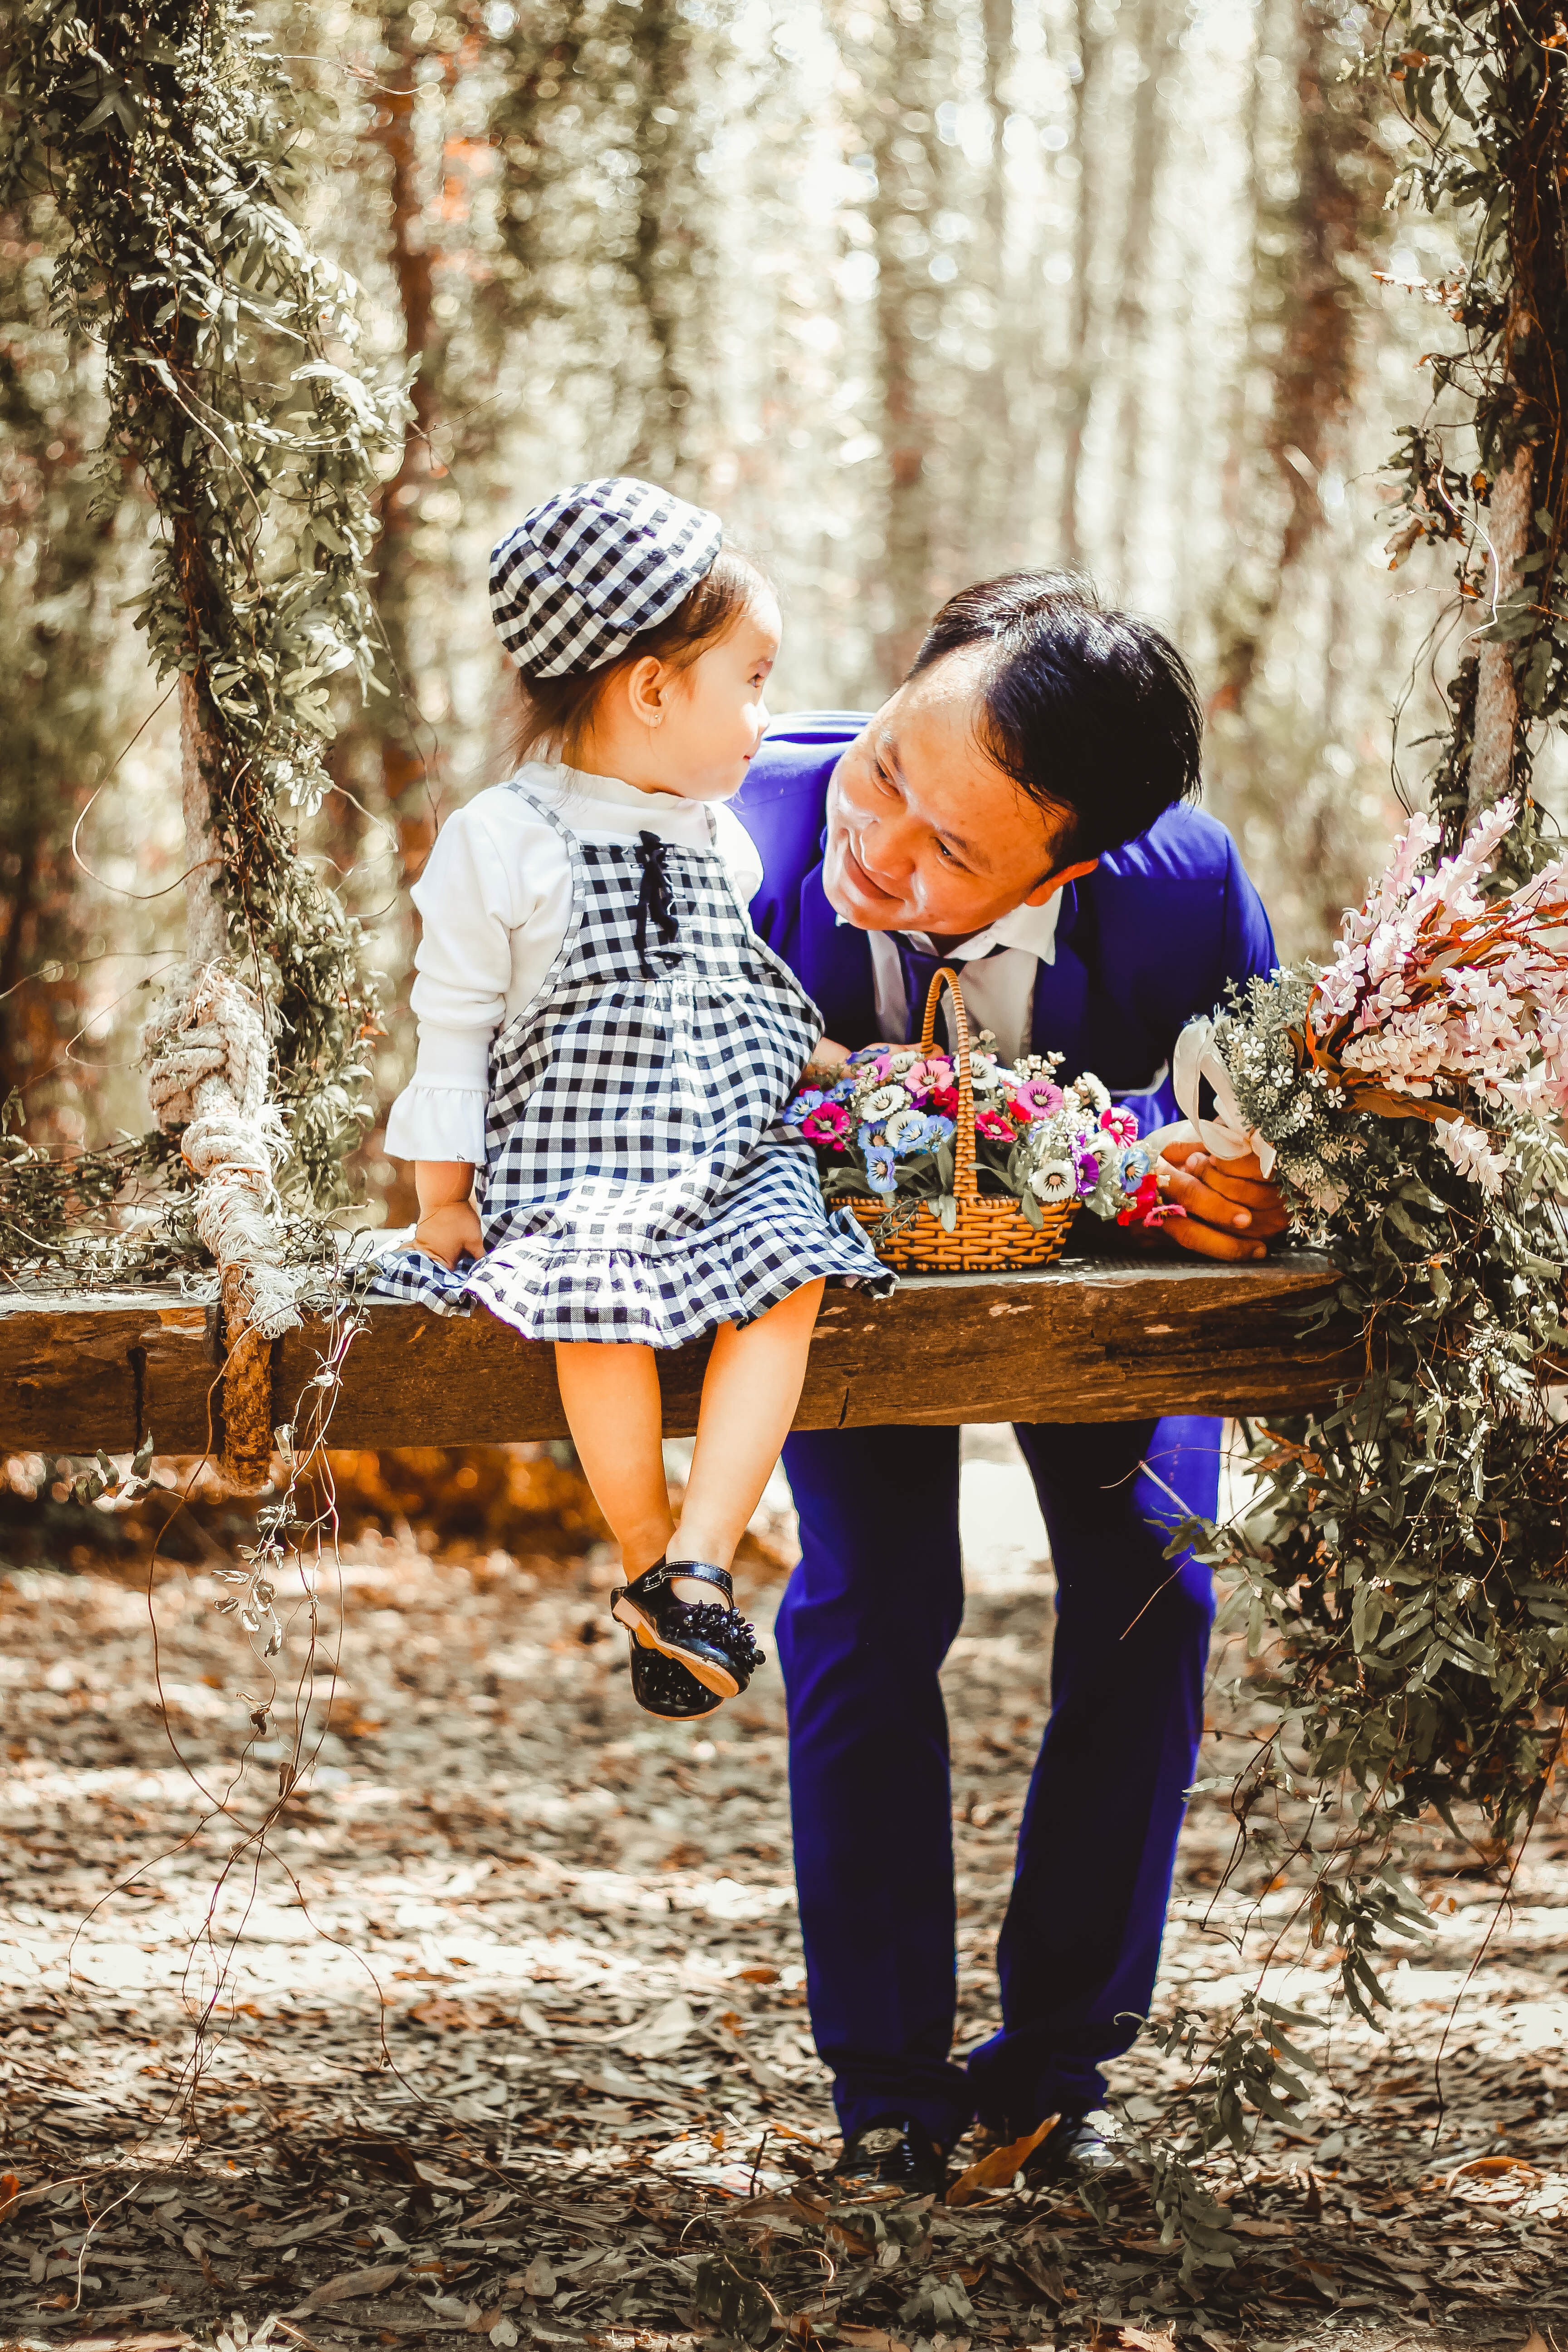 Selective Focus and Color Photography of Man Looking at Her Girl Sitting on Garden Swing White Holding Bouquet of Flower in Brown Wicker Basket, Smiling, People, Park, Together, HQ Photo